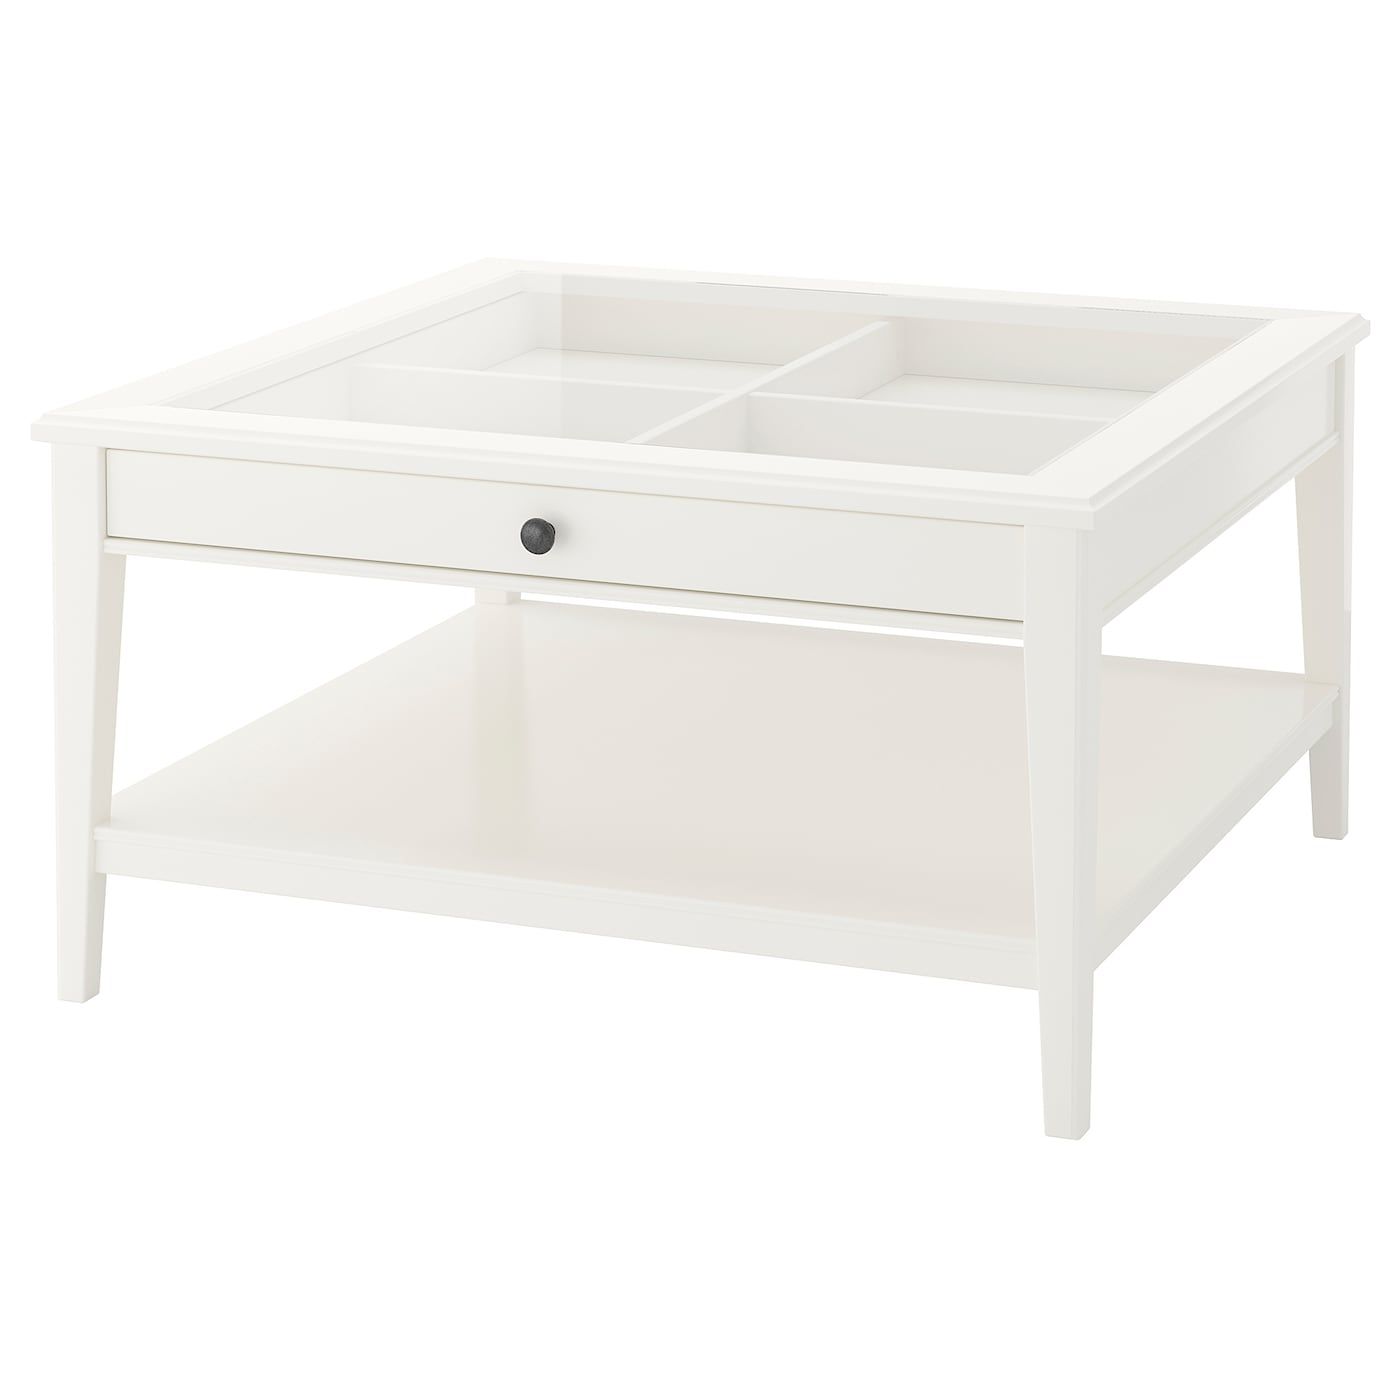 Buy Liatorp Coffee Table White Glass Online Ikea